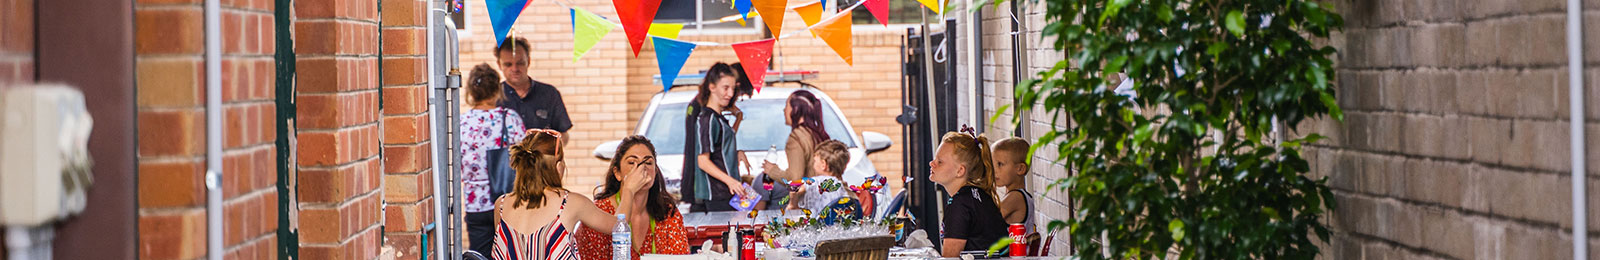 Young people celebrating Youth Week with markets in an alley